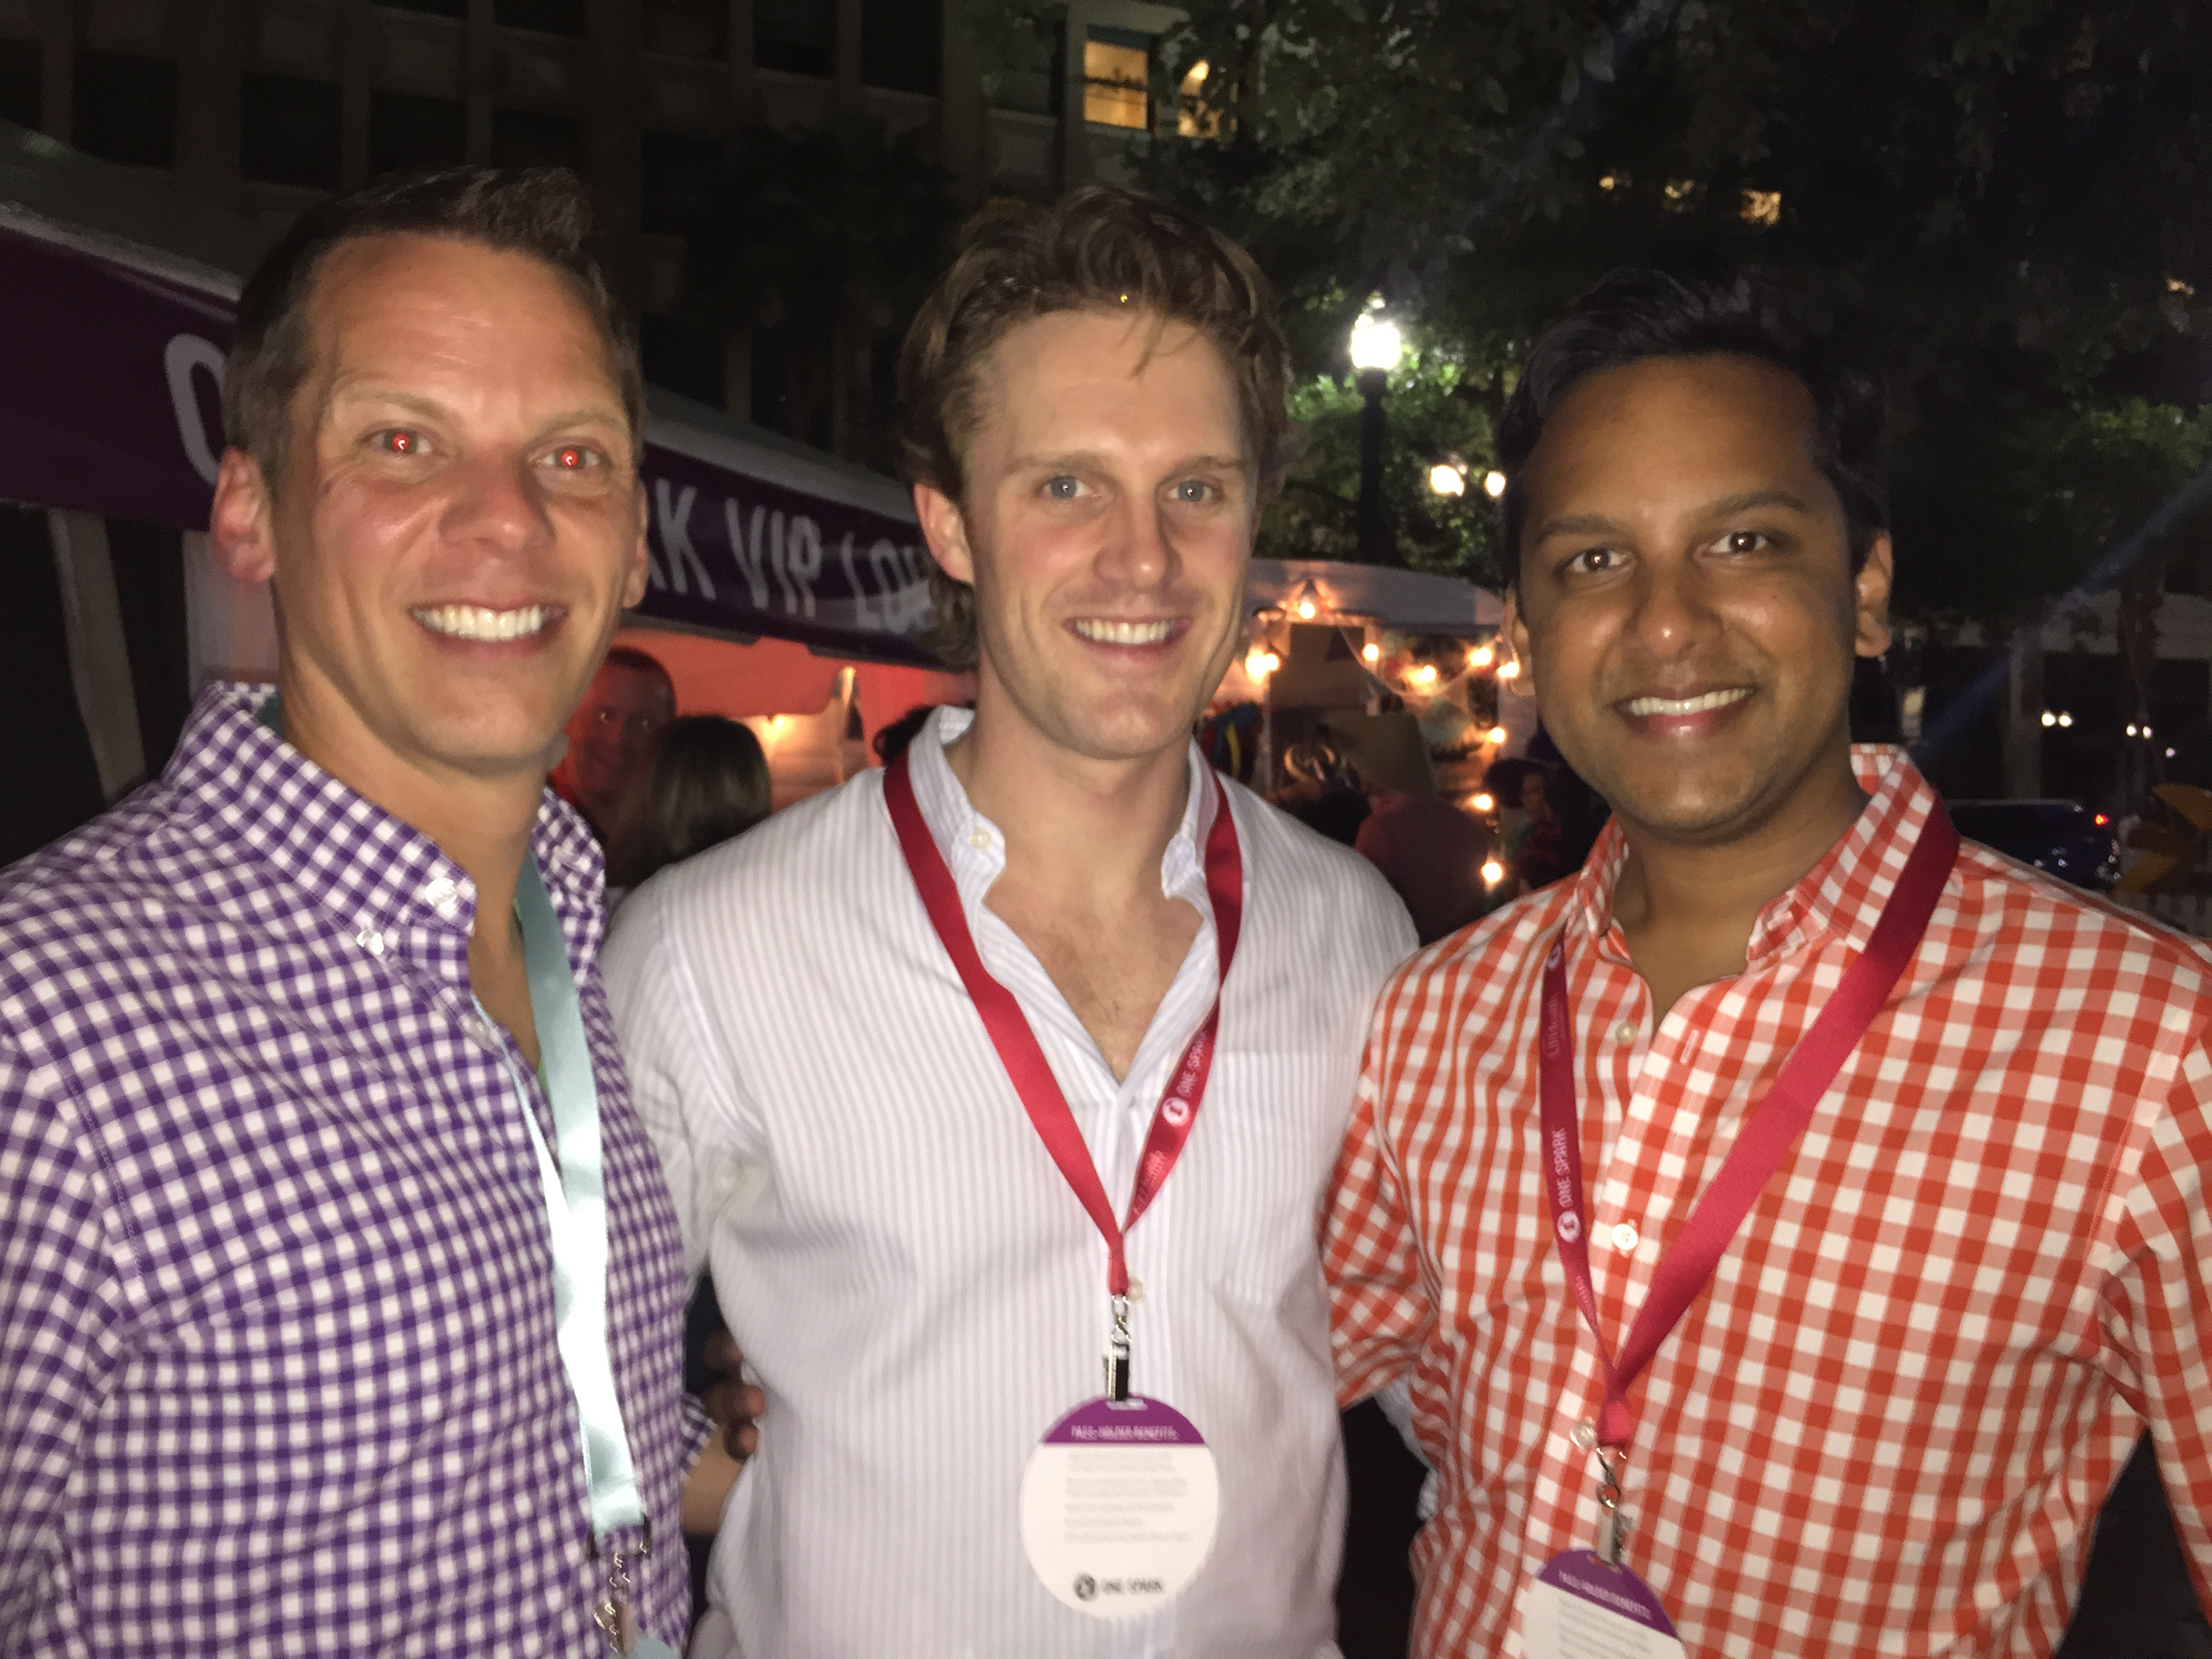 Opening night of OneSpark 2015 with Abel Harding and Ryan Ali.